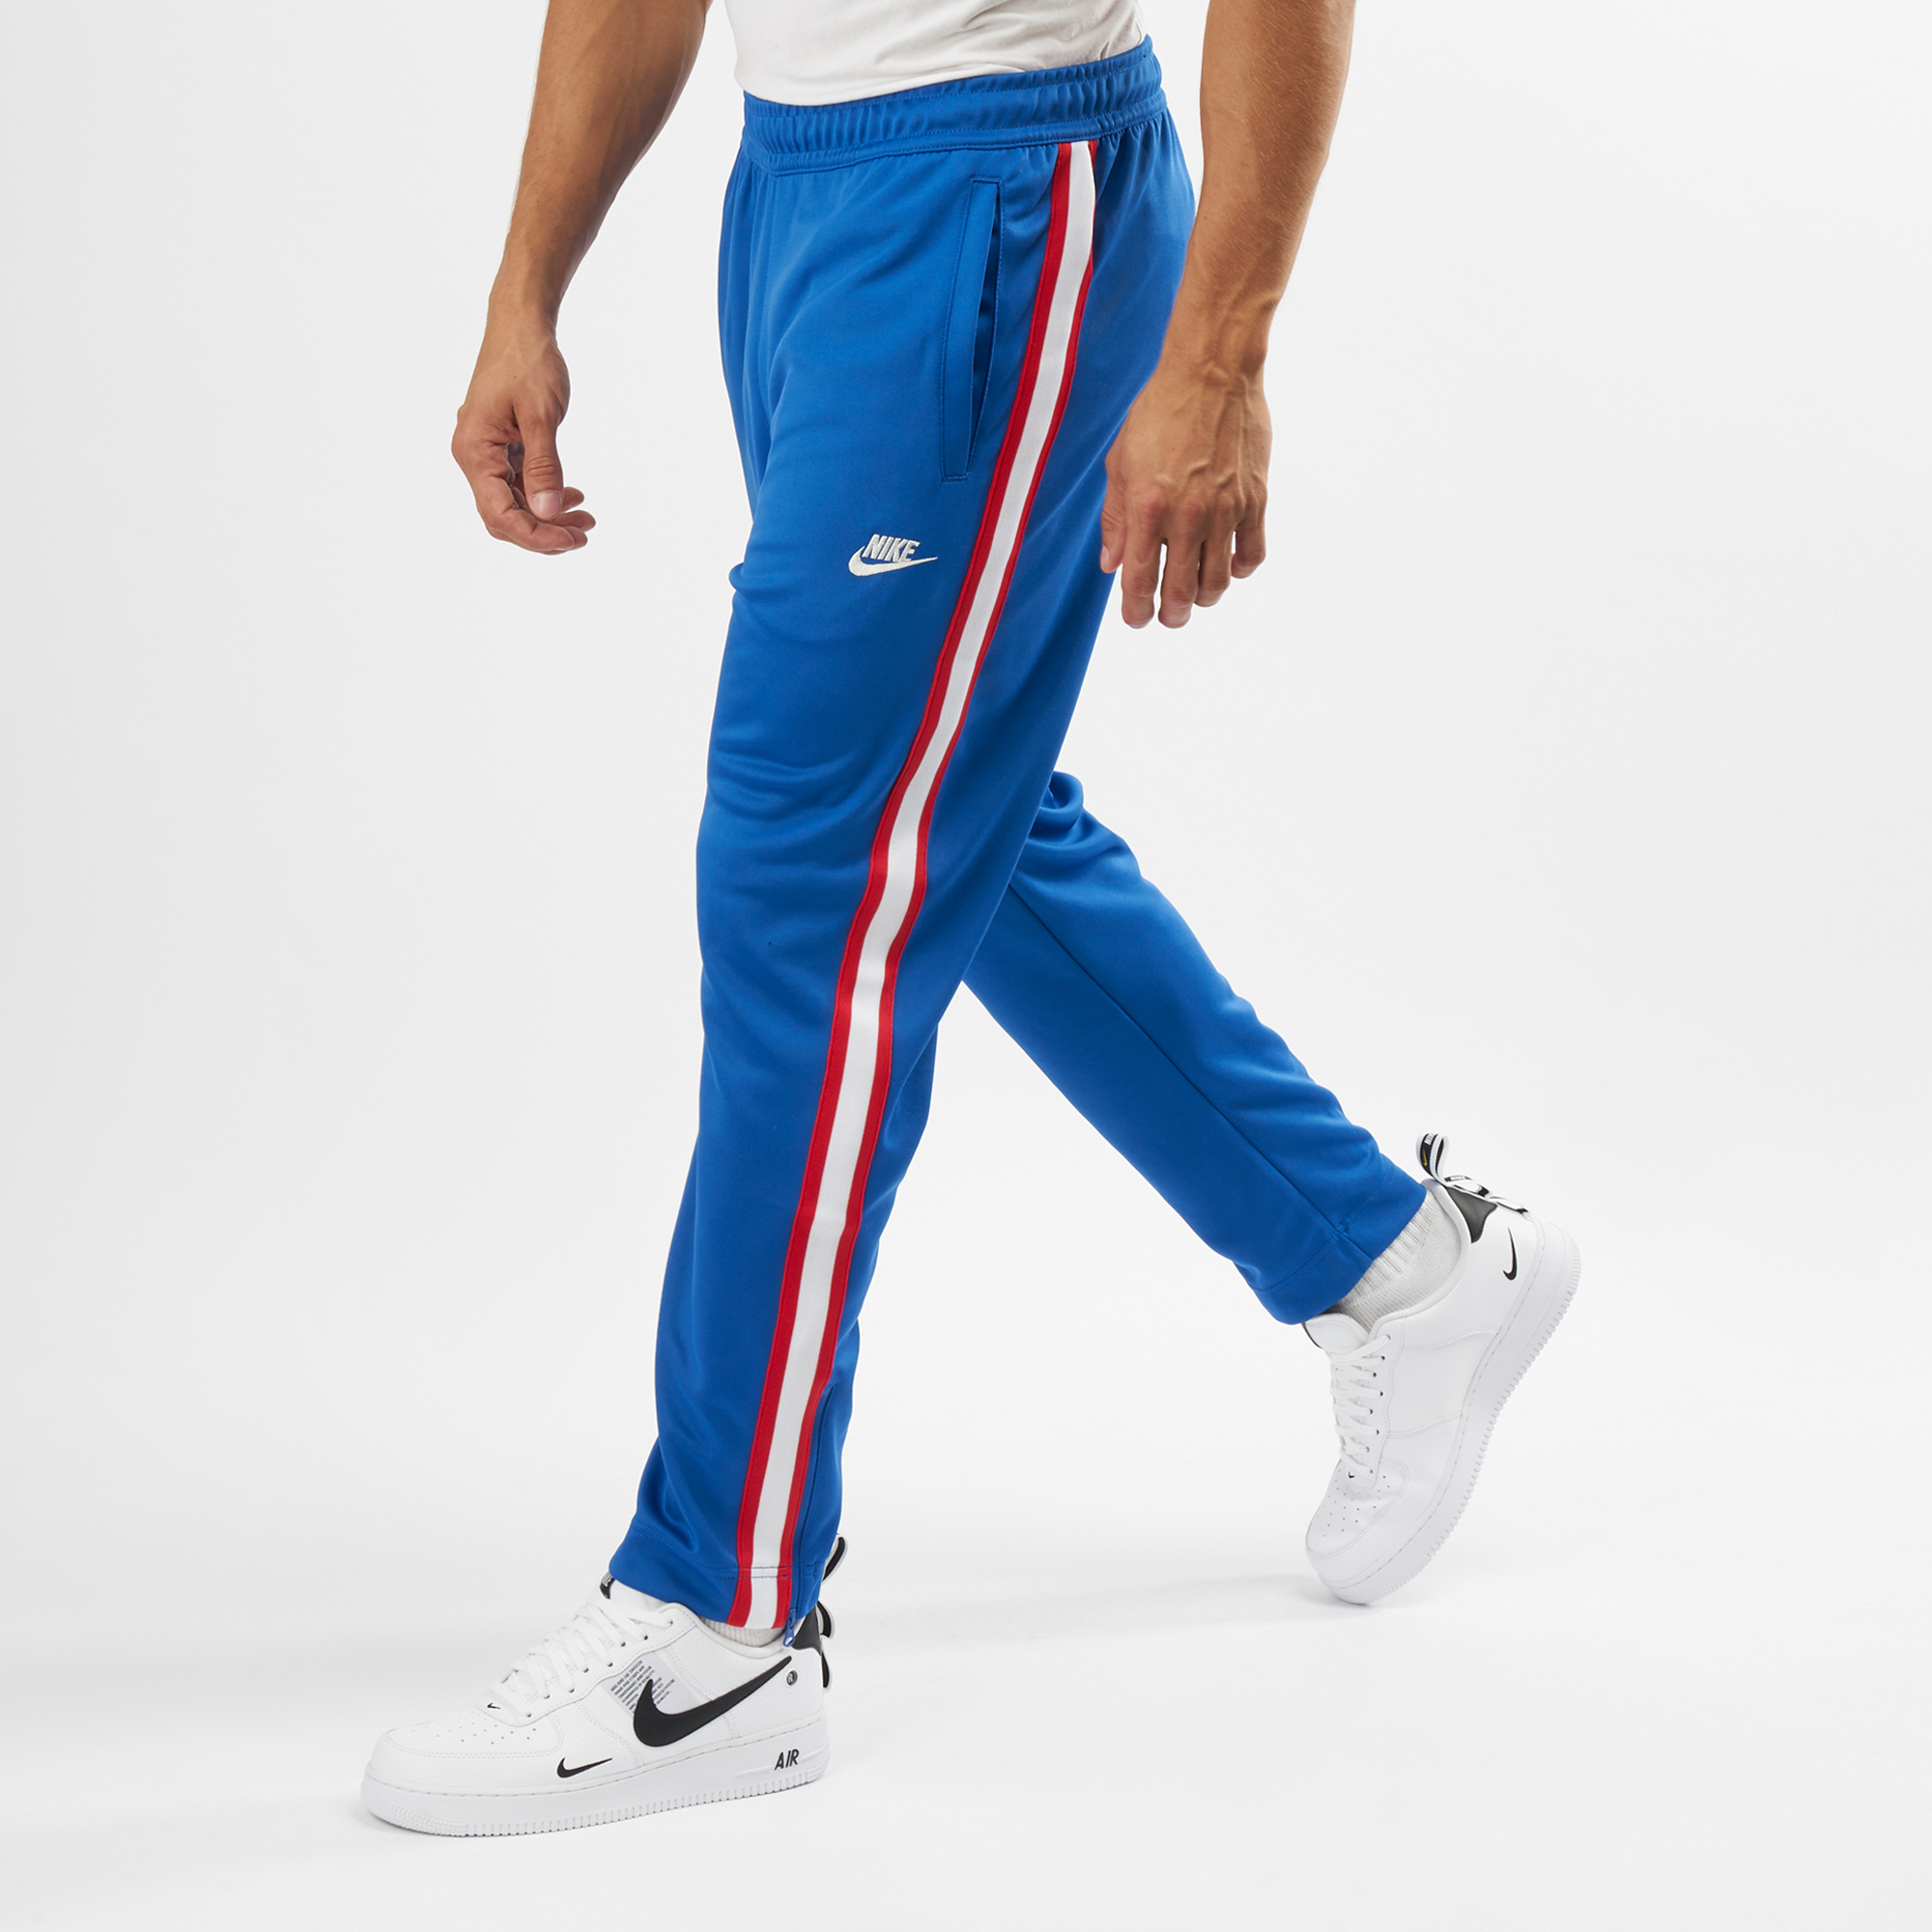 honor Ataque de nervios industria  men's sportswear tribute pants,Free Shipping,OFF75%,ID=7